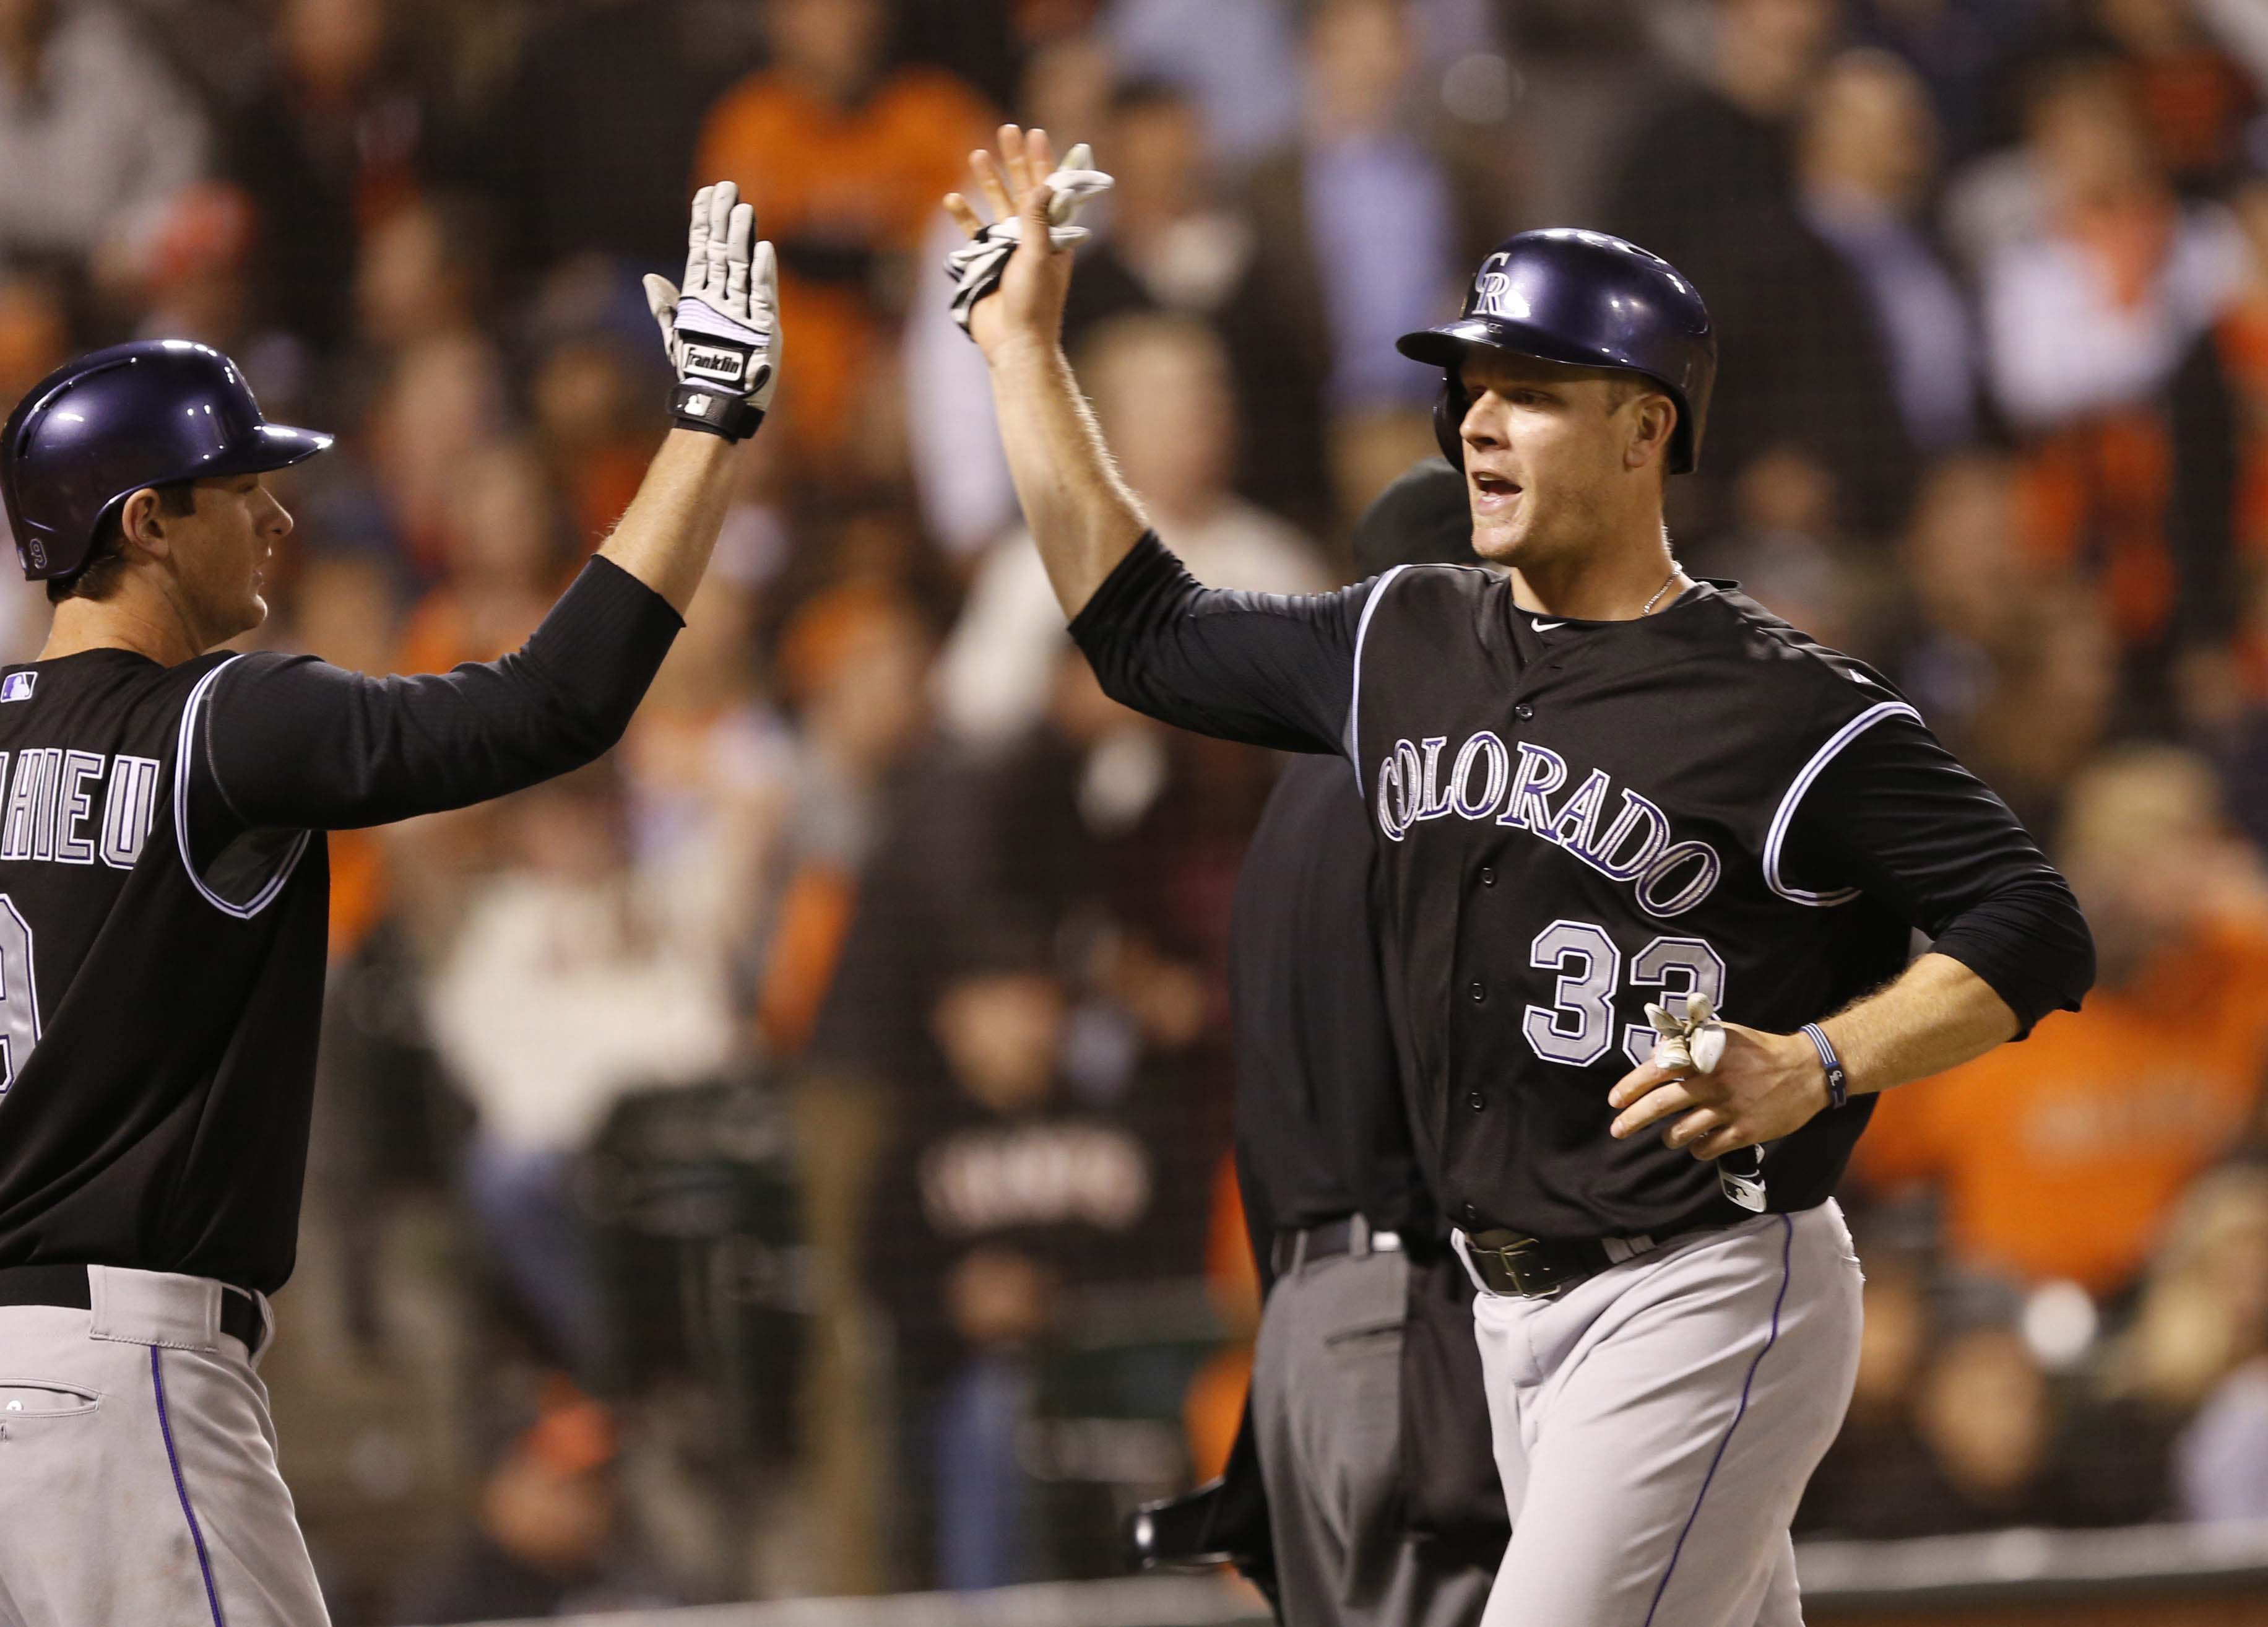 7952940-mlb-colorado-rockies-at-san-francisco-giants